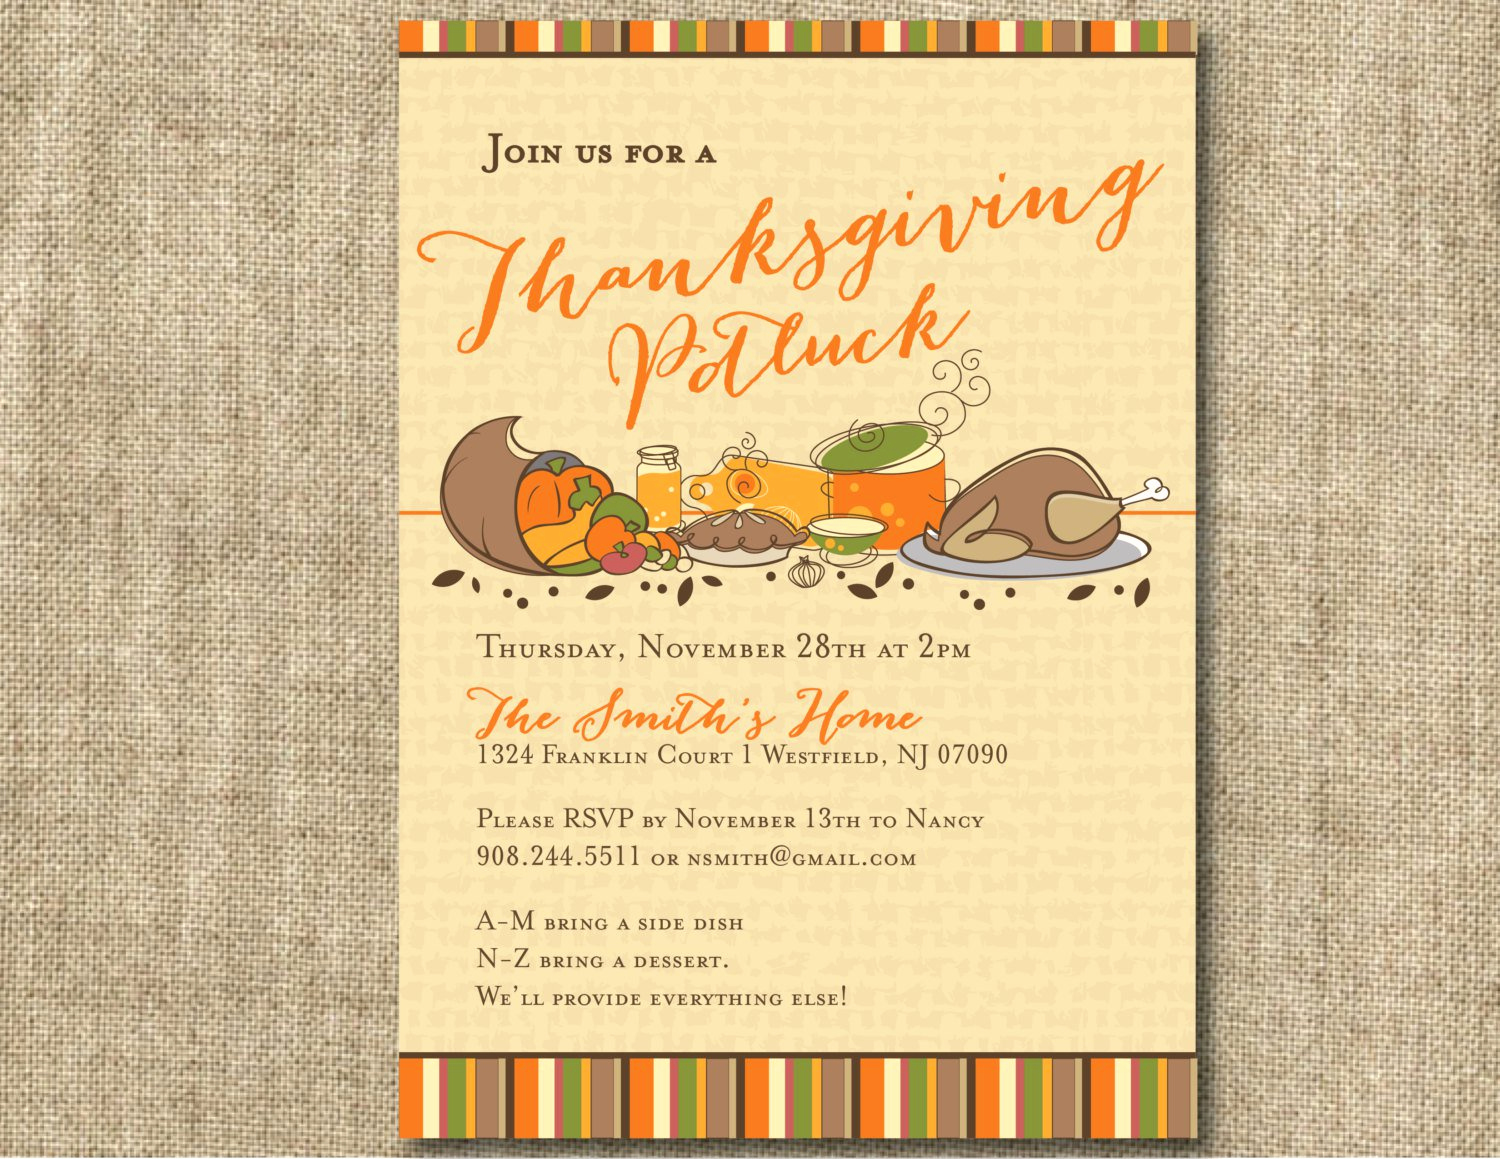 Potluck Invitation Template Free Printable Inspirational Thanksgiving Potluck Invitation